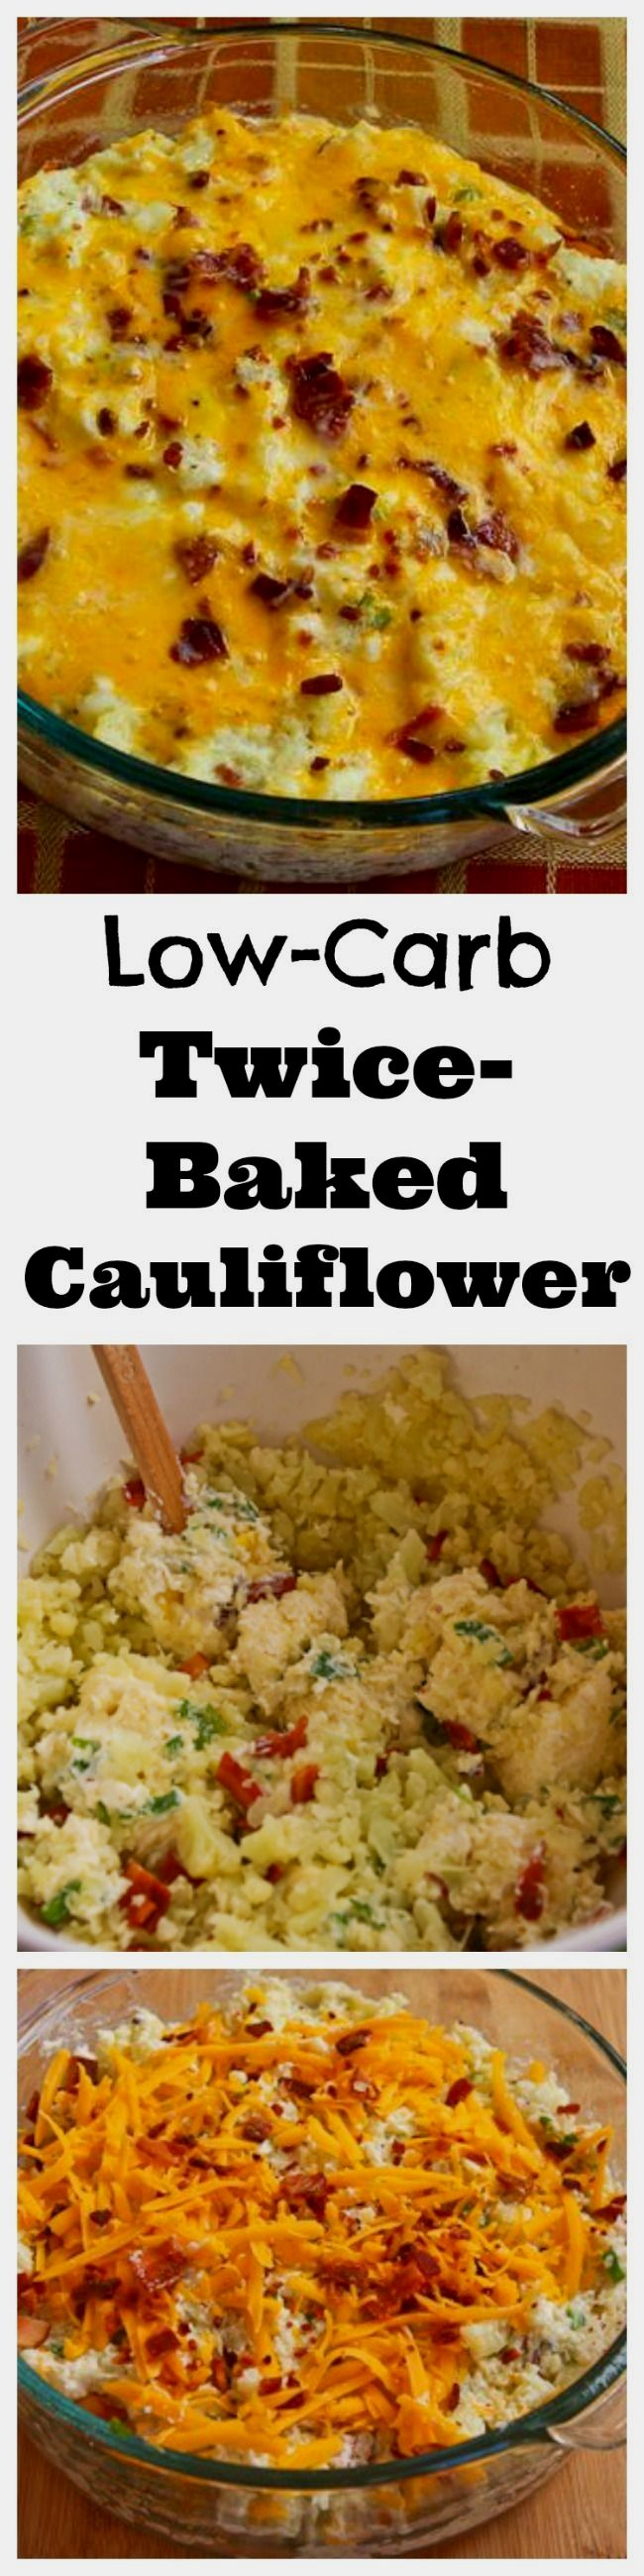 This Low-Carb Twice Baked Cauliflower Casserole tastes like twice-baked potatoes, minus the carbs. [from KalynsKitchen.com]